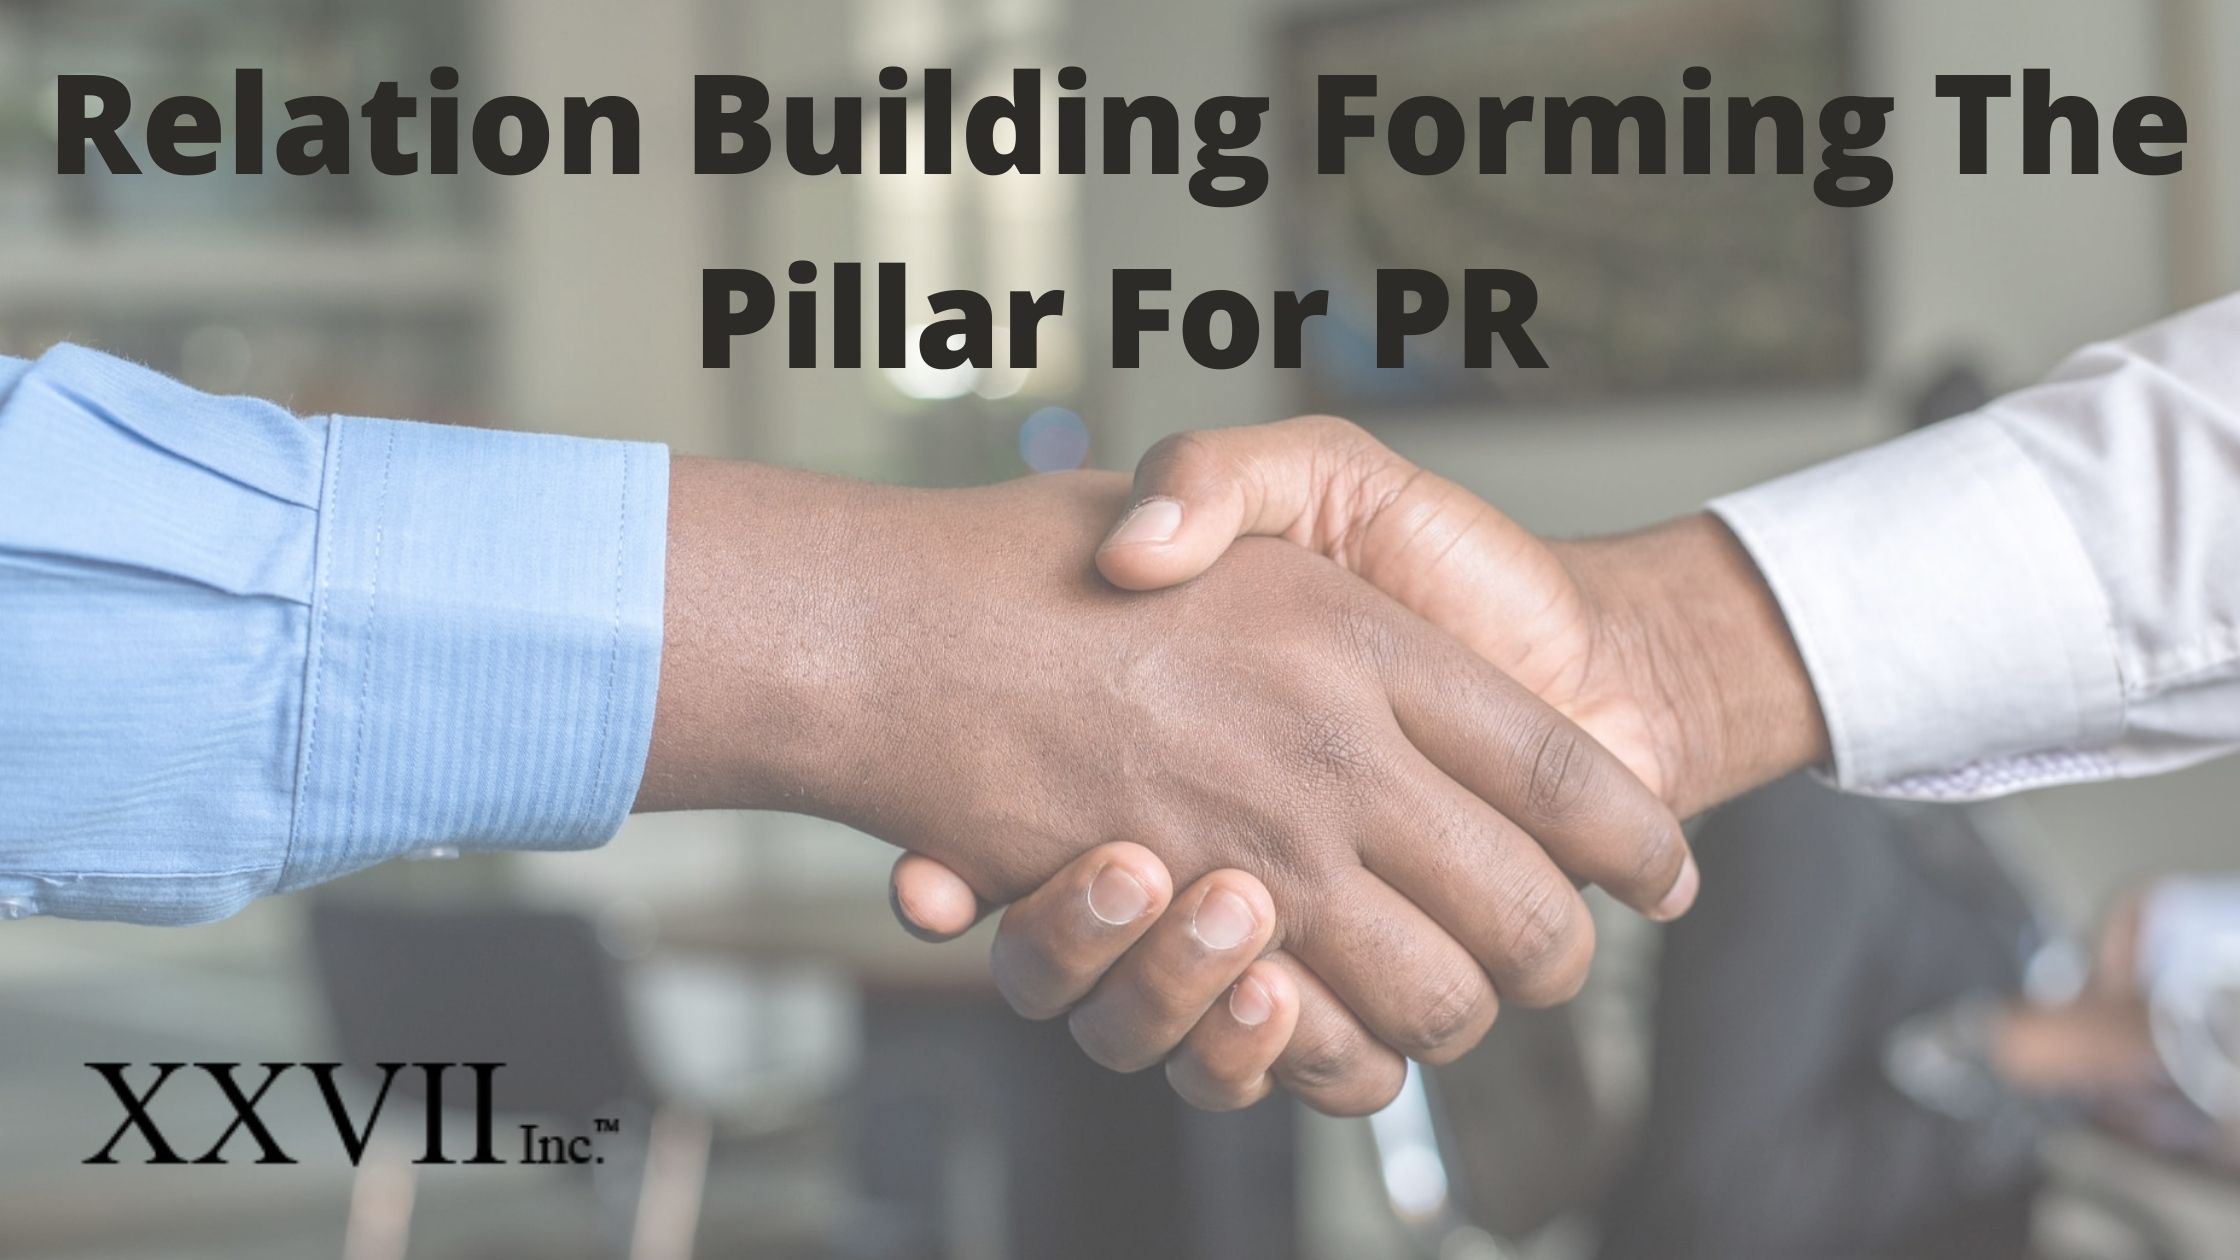 Relation Building Forming The Pillar For PR